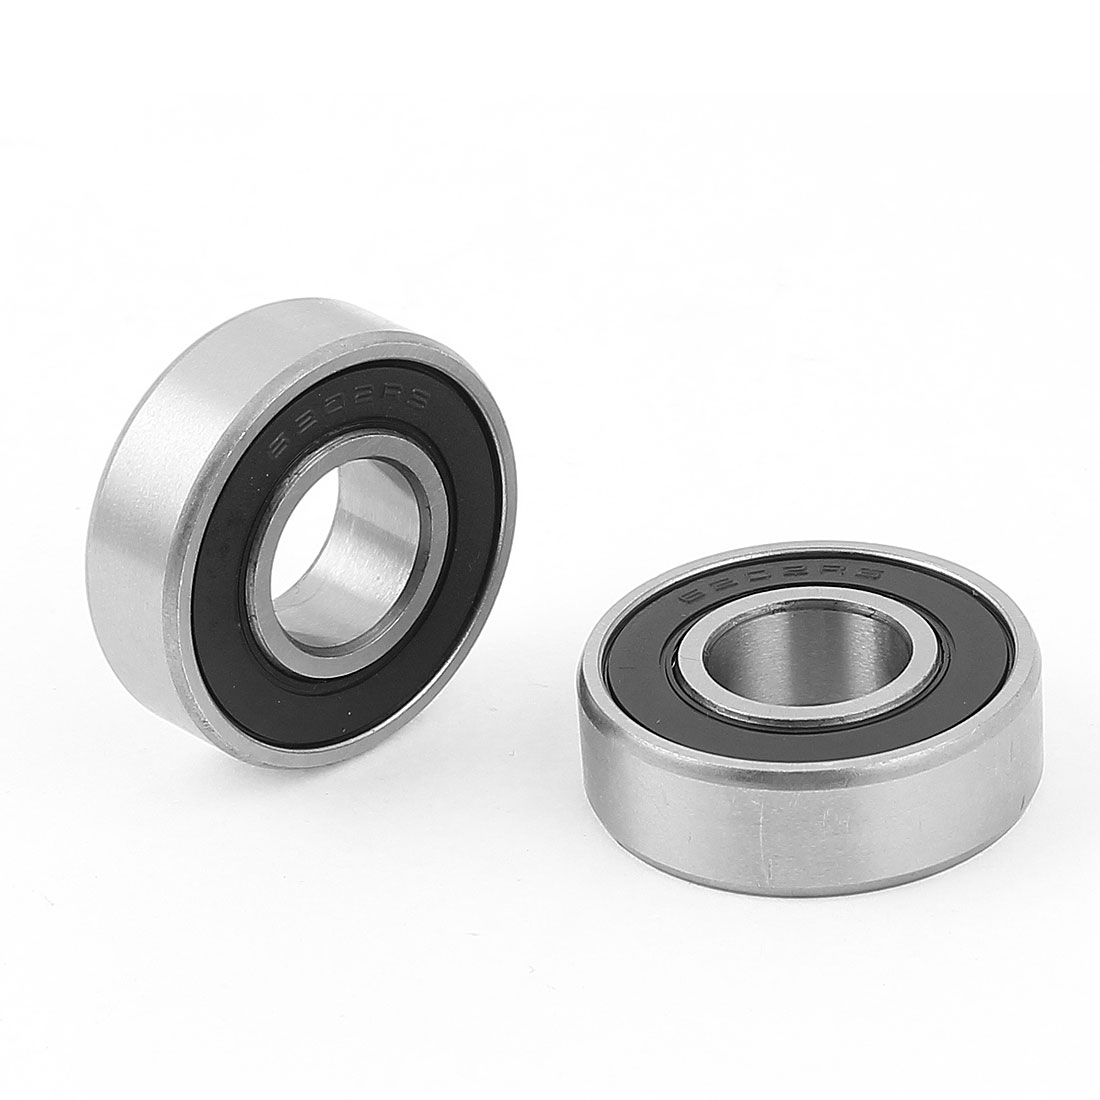 6202RS 15mm x 35mm x 10mm Roller-Skating Sealed Skating Deep Groove Ball Bearing 2Pcs